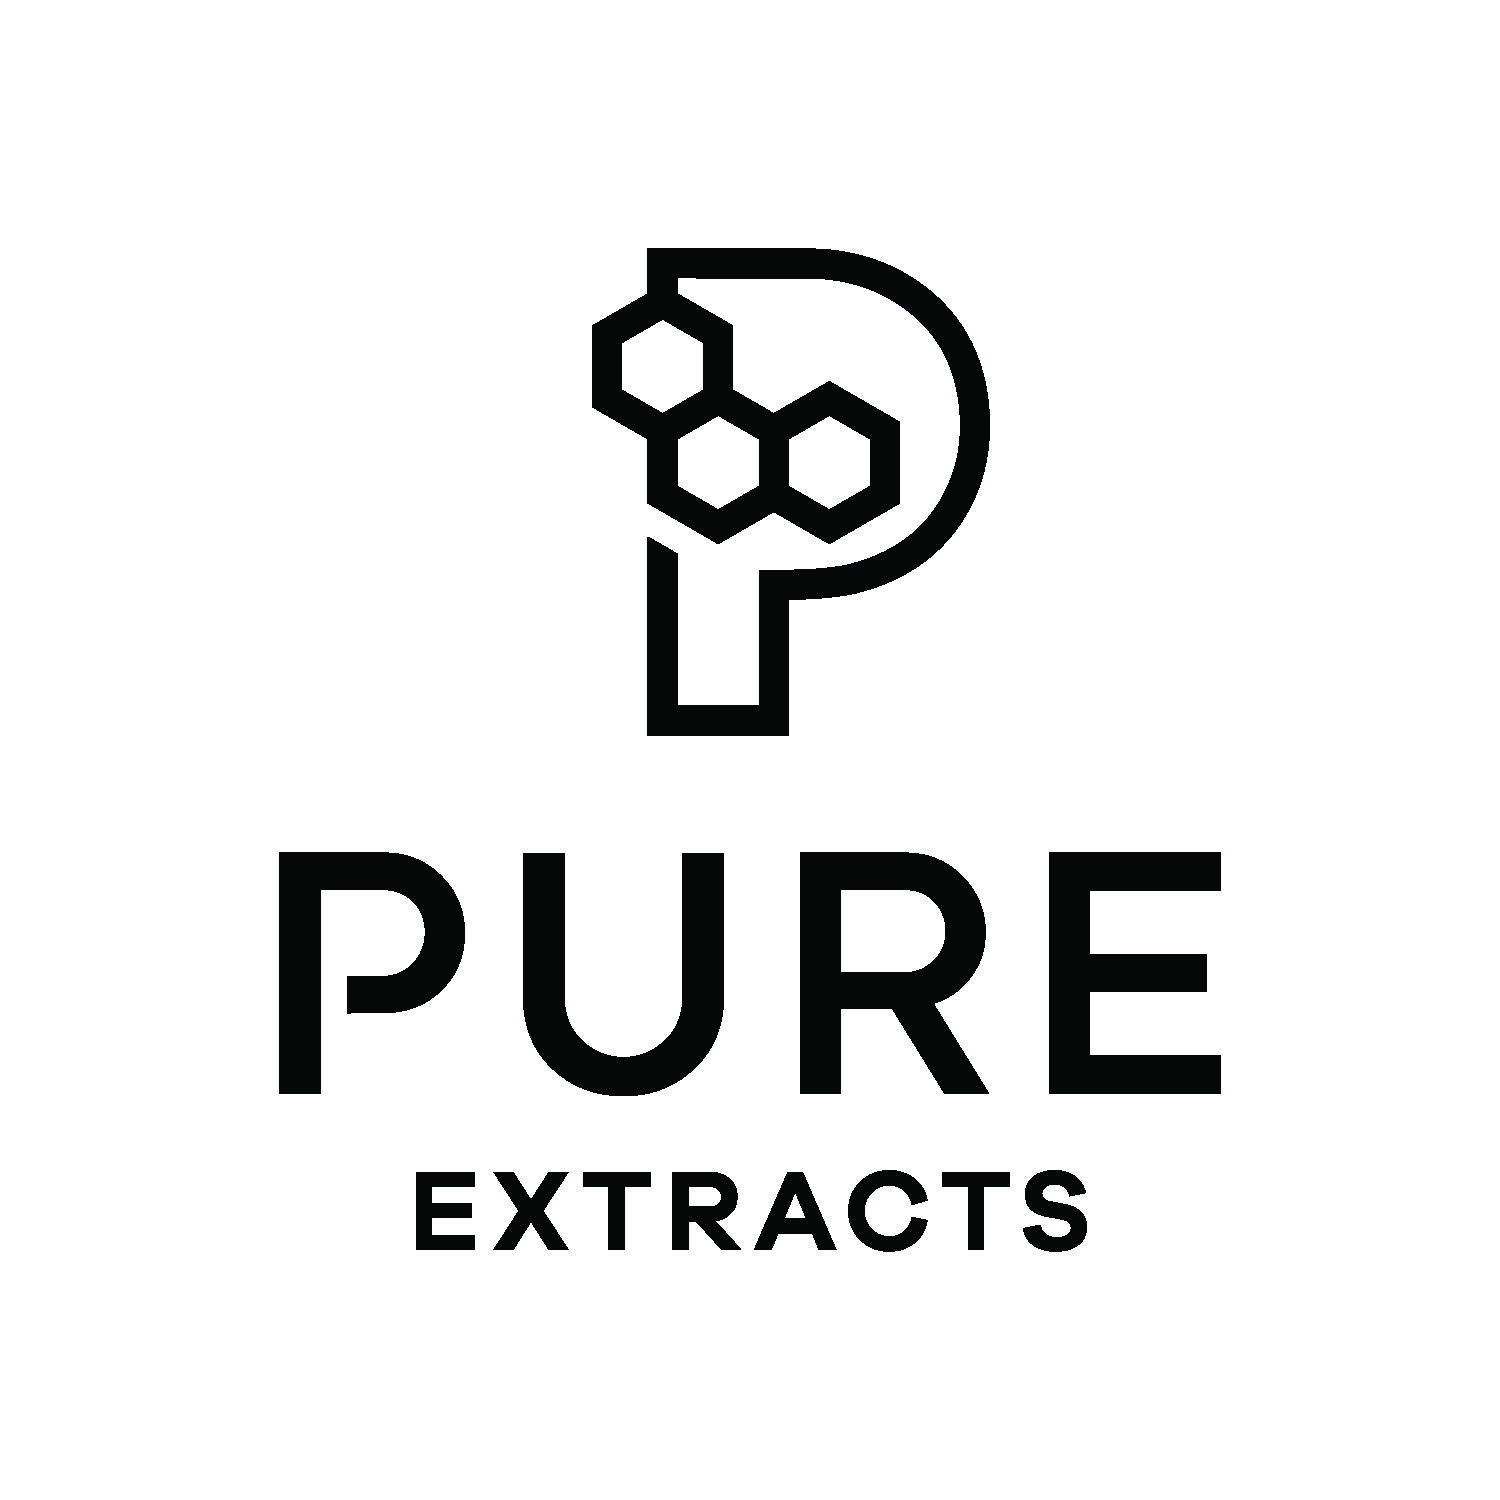 Pure Extracts Applauds Health Canada SAP for Psilocybin-Assisted Psychotherapy Inclusion